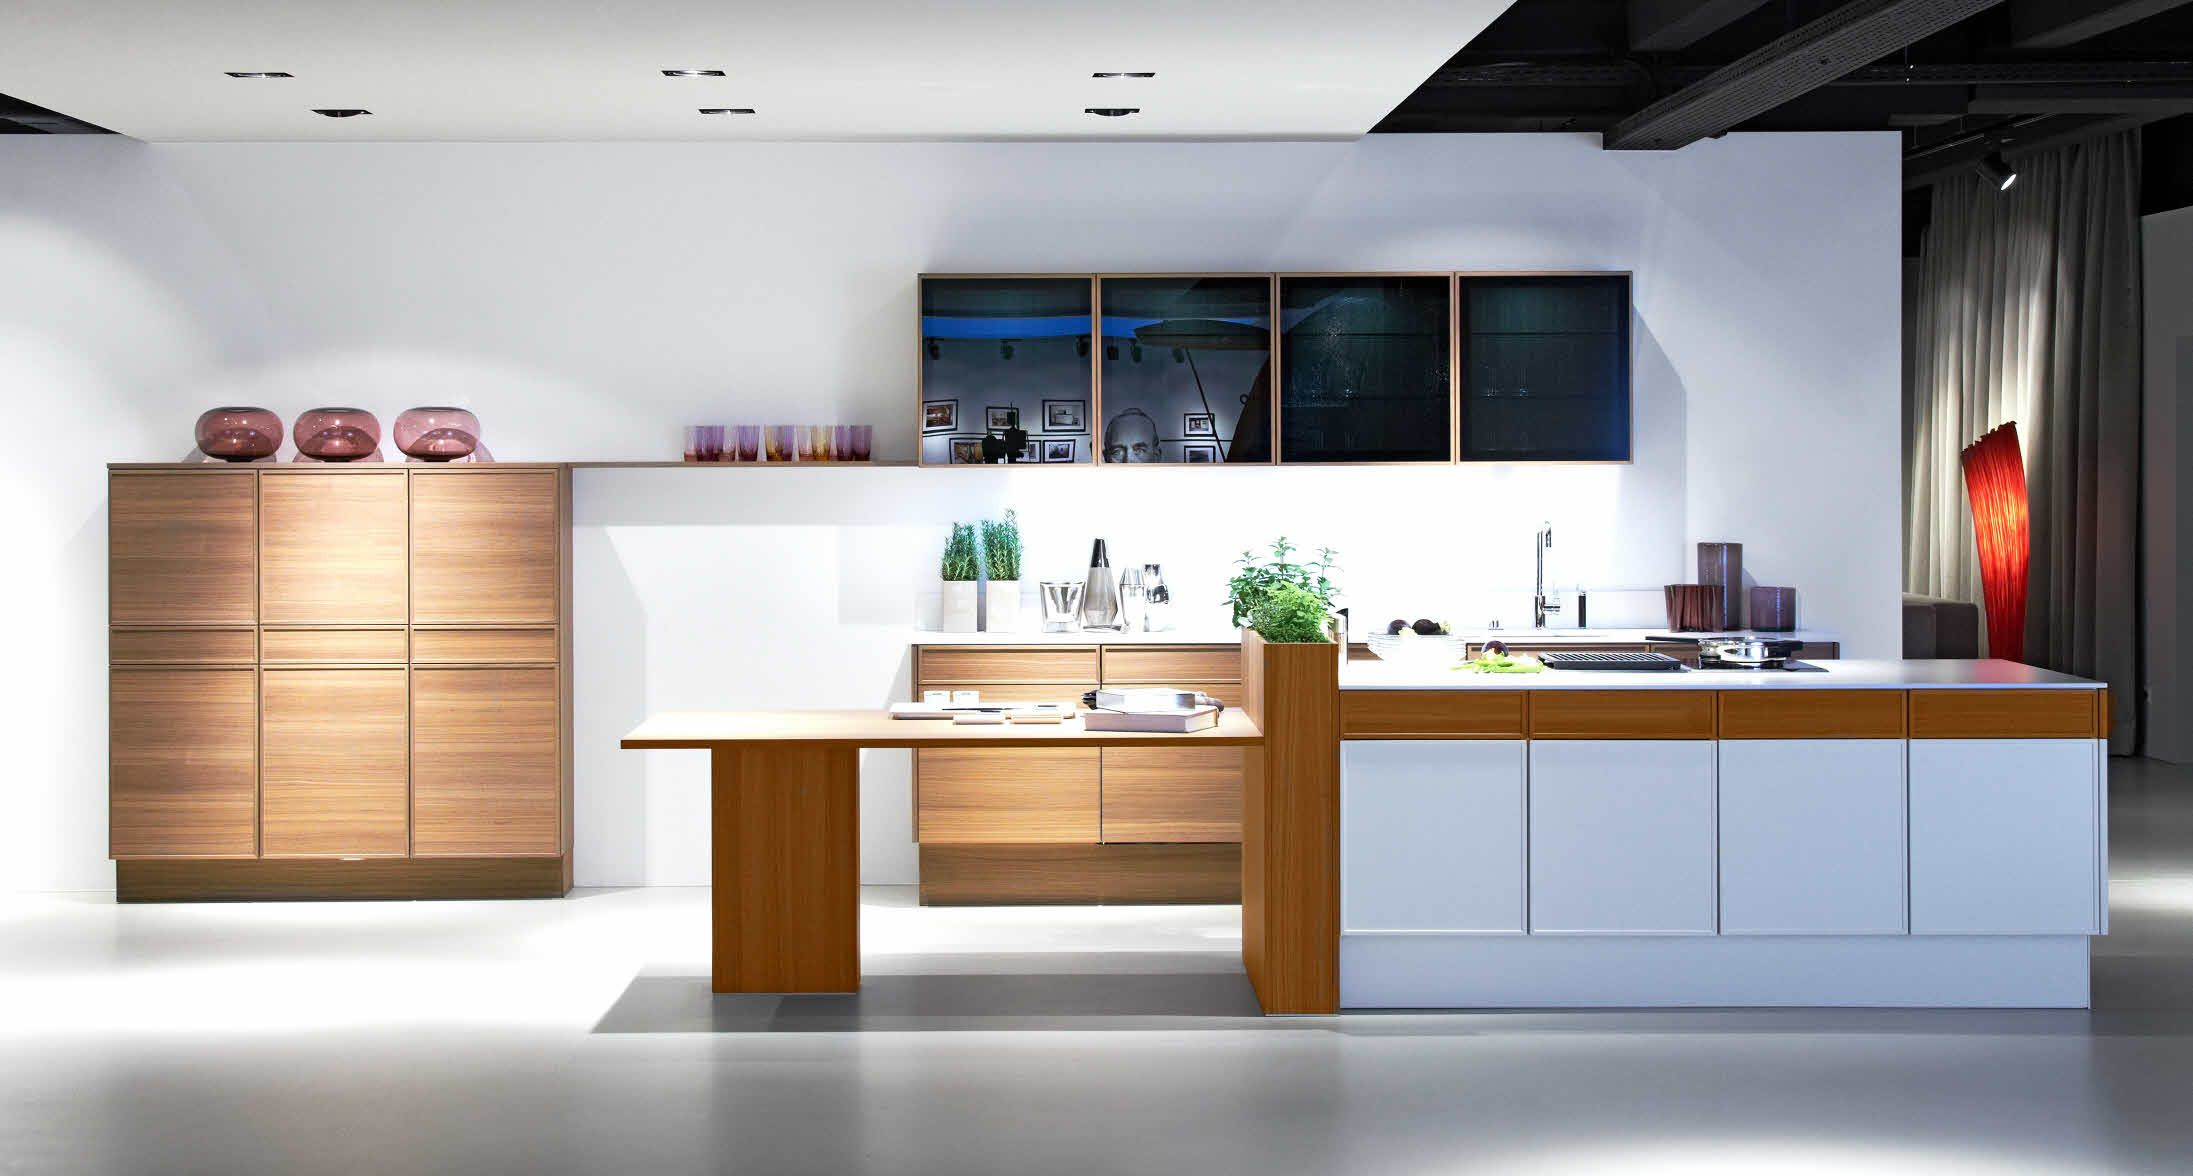 Dan Küche Wiener Neudorf Poggenpohl Showroom Herford Edition Front View Kitchen Island